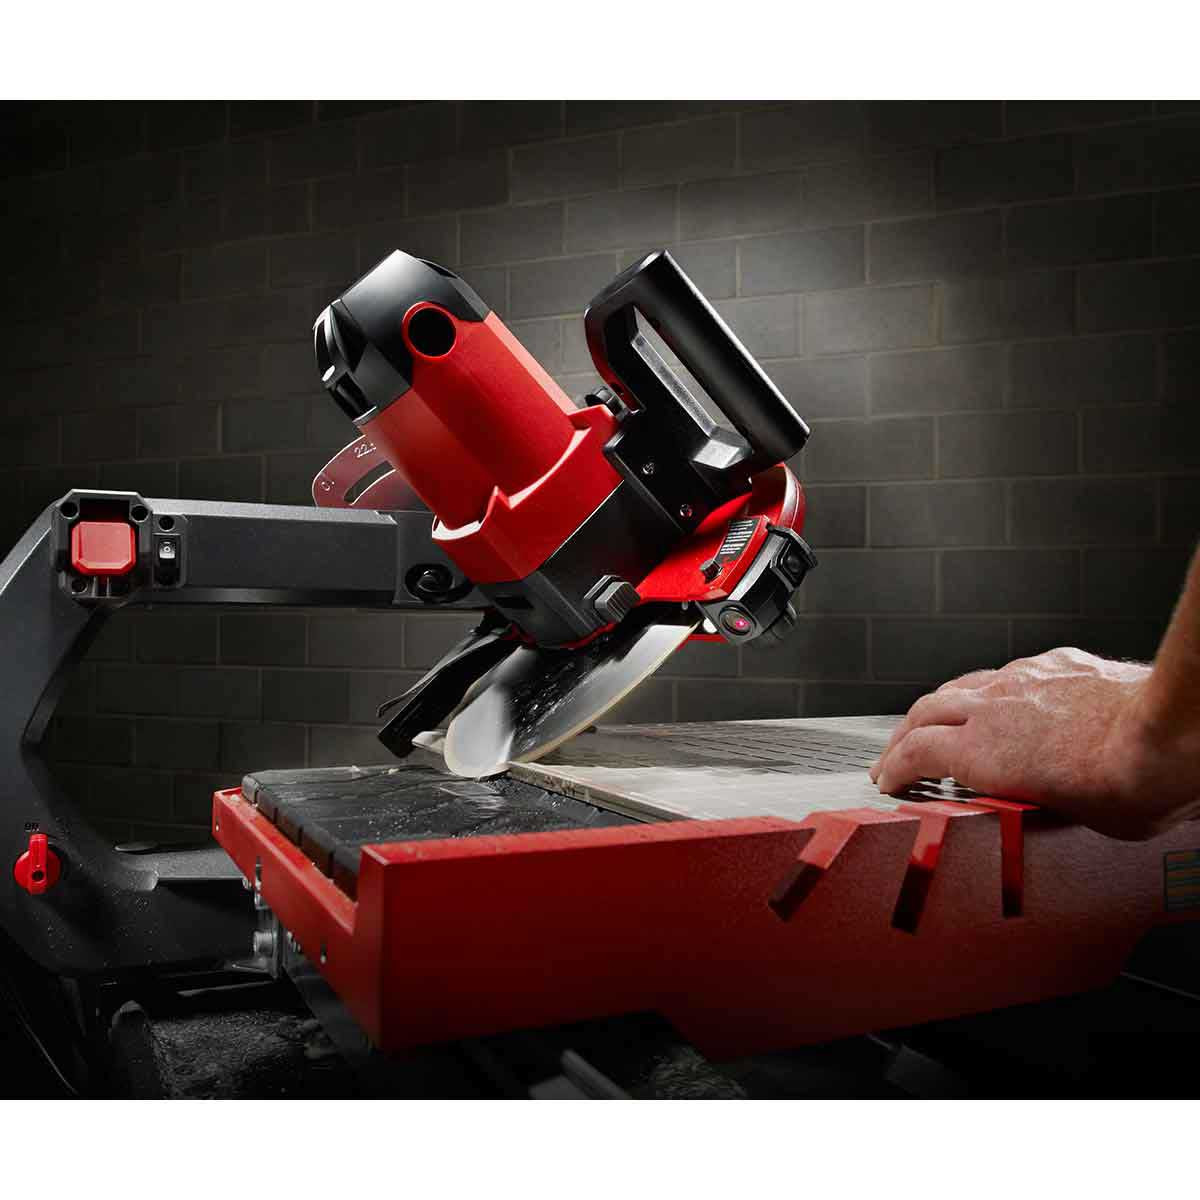 45 Degree Miter with Rubi DT250 Saw